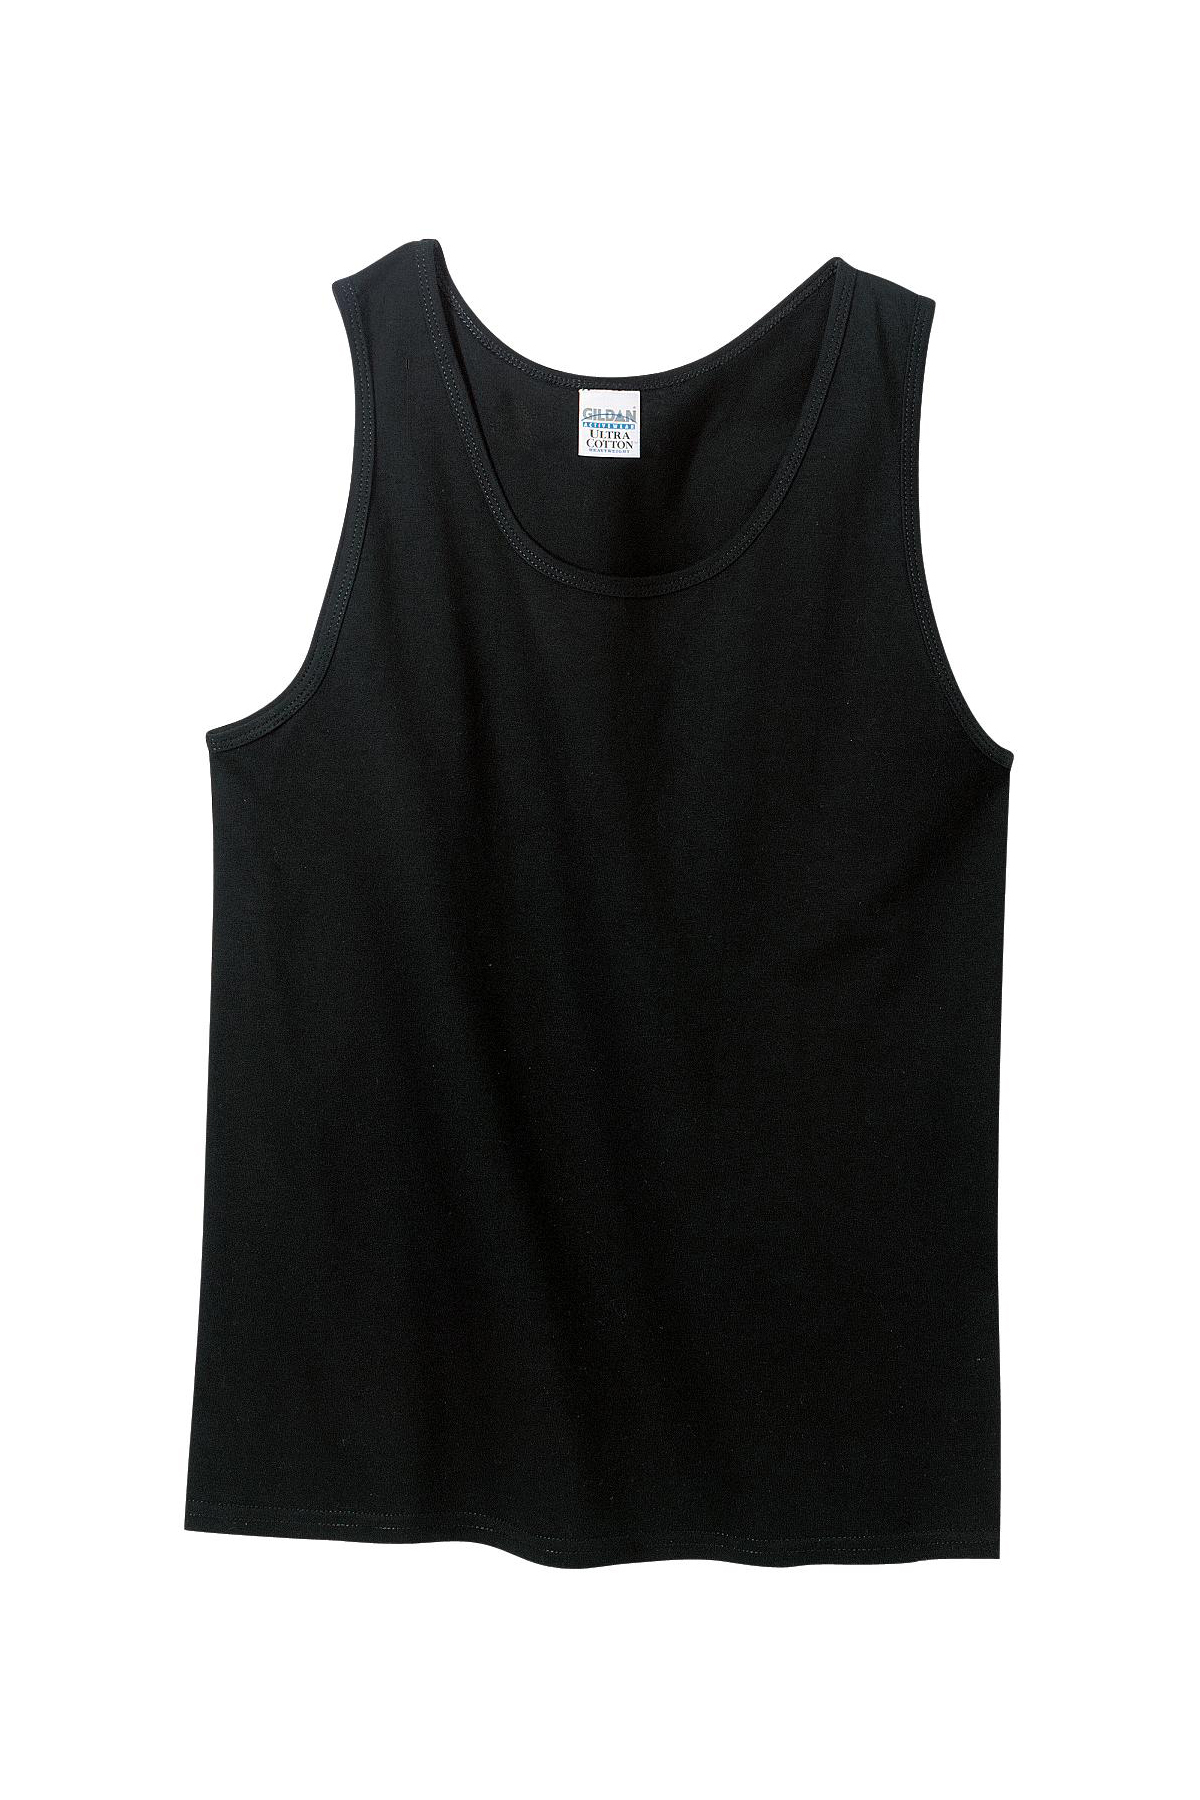 de46143db81 ... Gildan® - Ultra Cotton® Tank Top. A maximum of 8 logos have been  uploaded. Please remove a logo from My Logos to continue